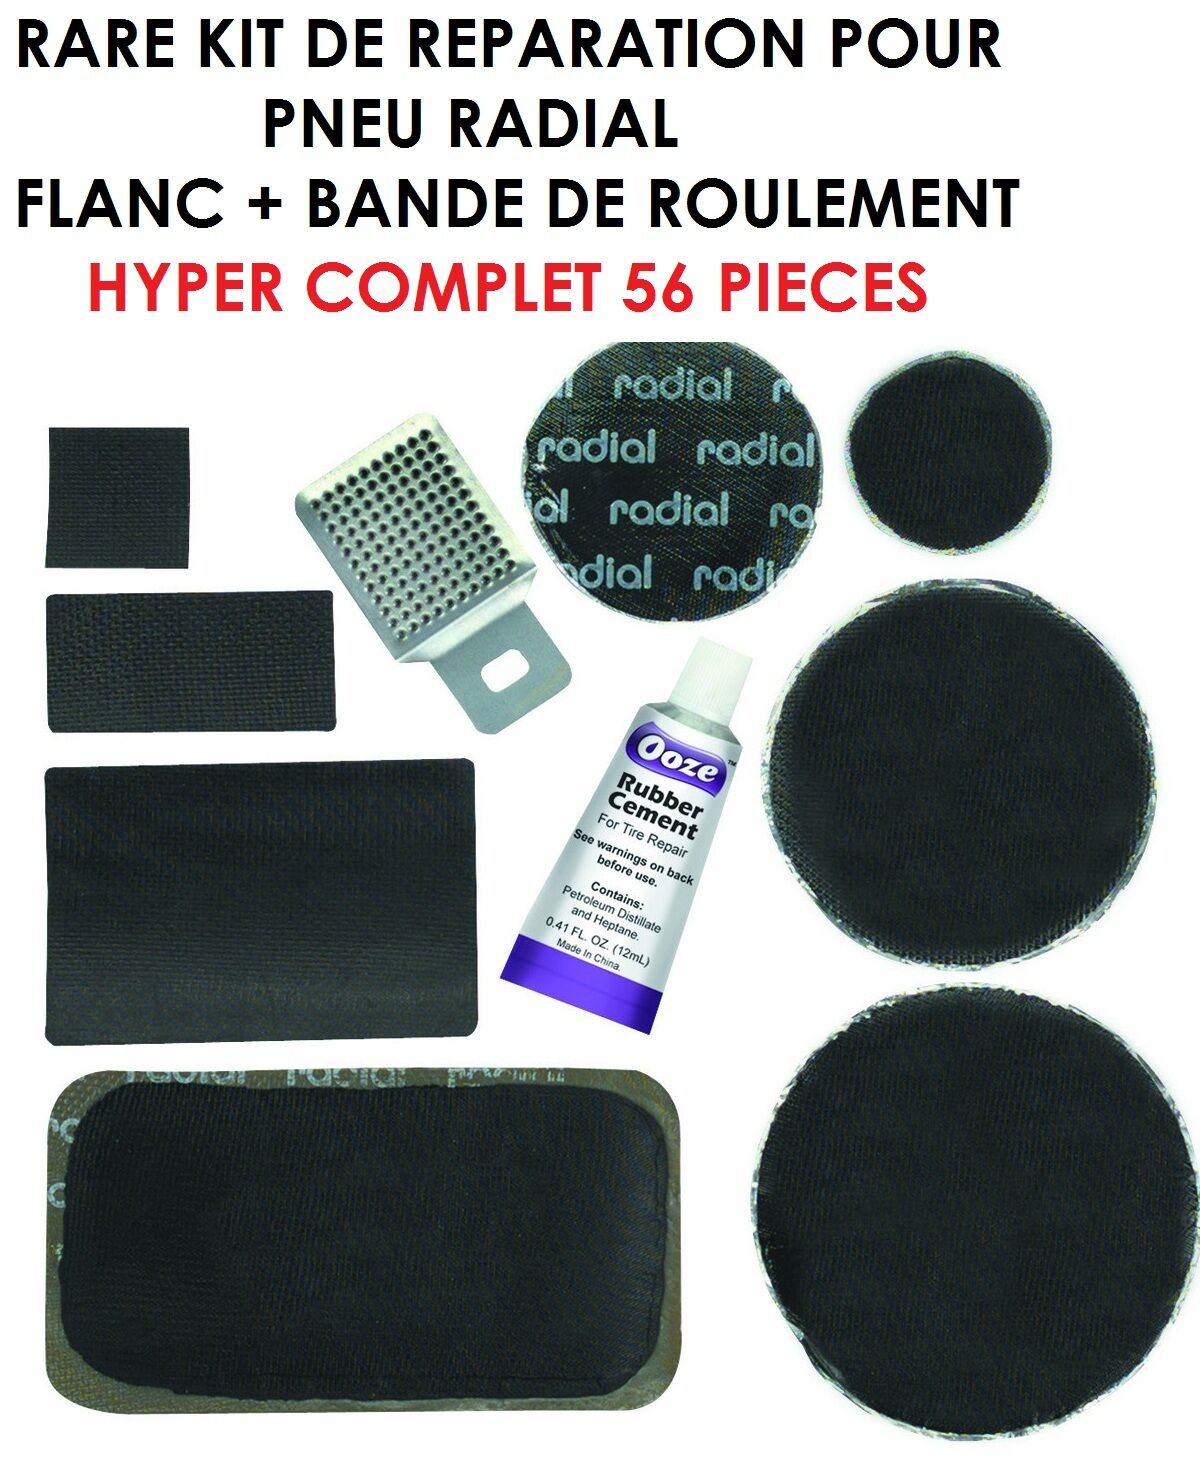 rare kit reparation pneus radial flanc bande de roulement 56 pieces eur 65 01 picclick fr. Black Bedroom Furniture Sets. Home Design Ideas